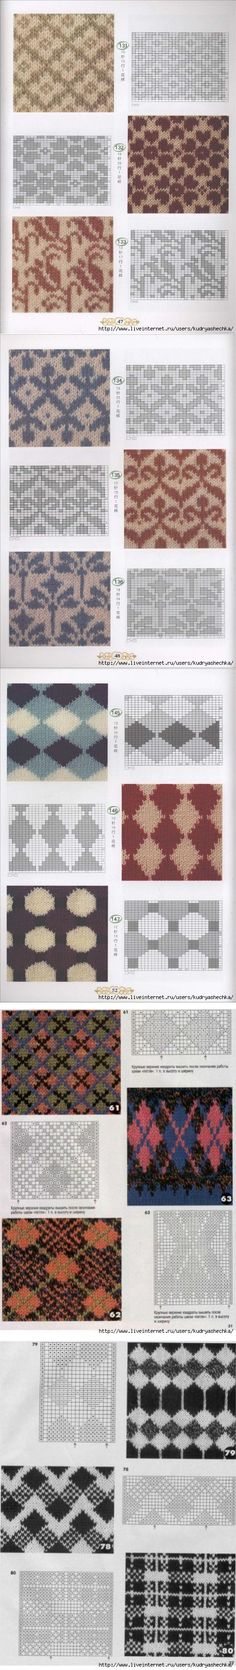 disegni jacquard You can knit one shade and purl the other shade Fair Isle Knitting Patterns, Fair Isle Pattern, Knitting Charts, Knitting Stiches, Knitting Designs, Knit Patterns, Hand Knitting, Easy Patterns, Knitting Tutorials